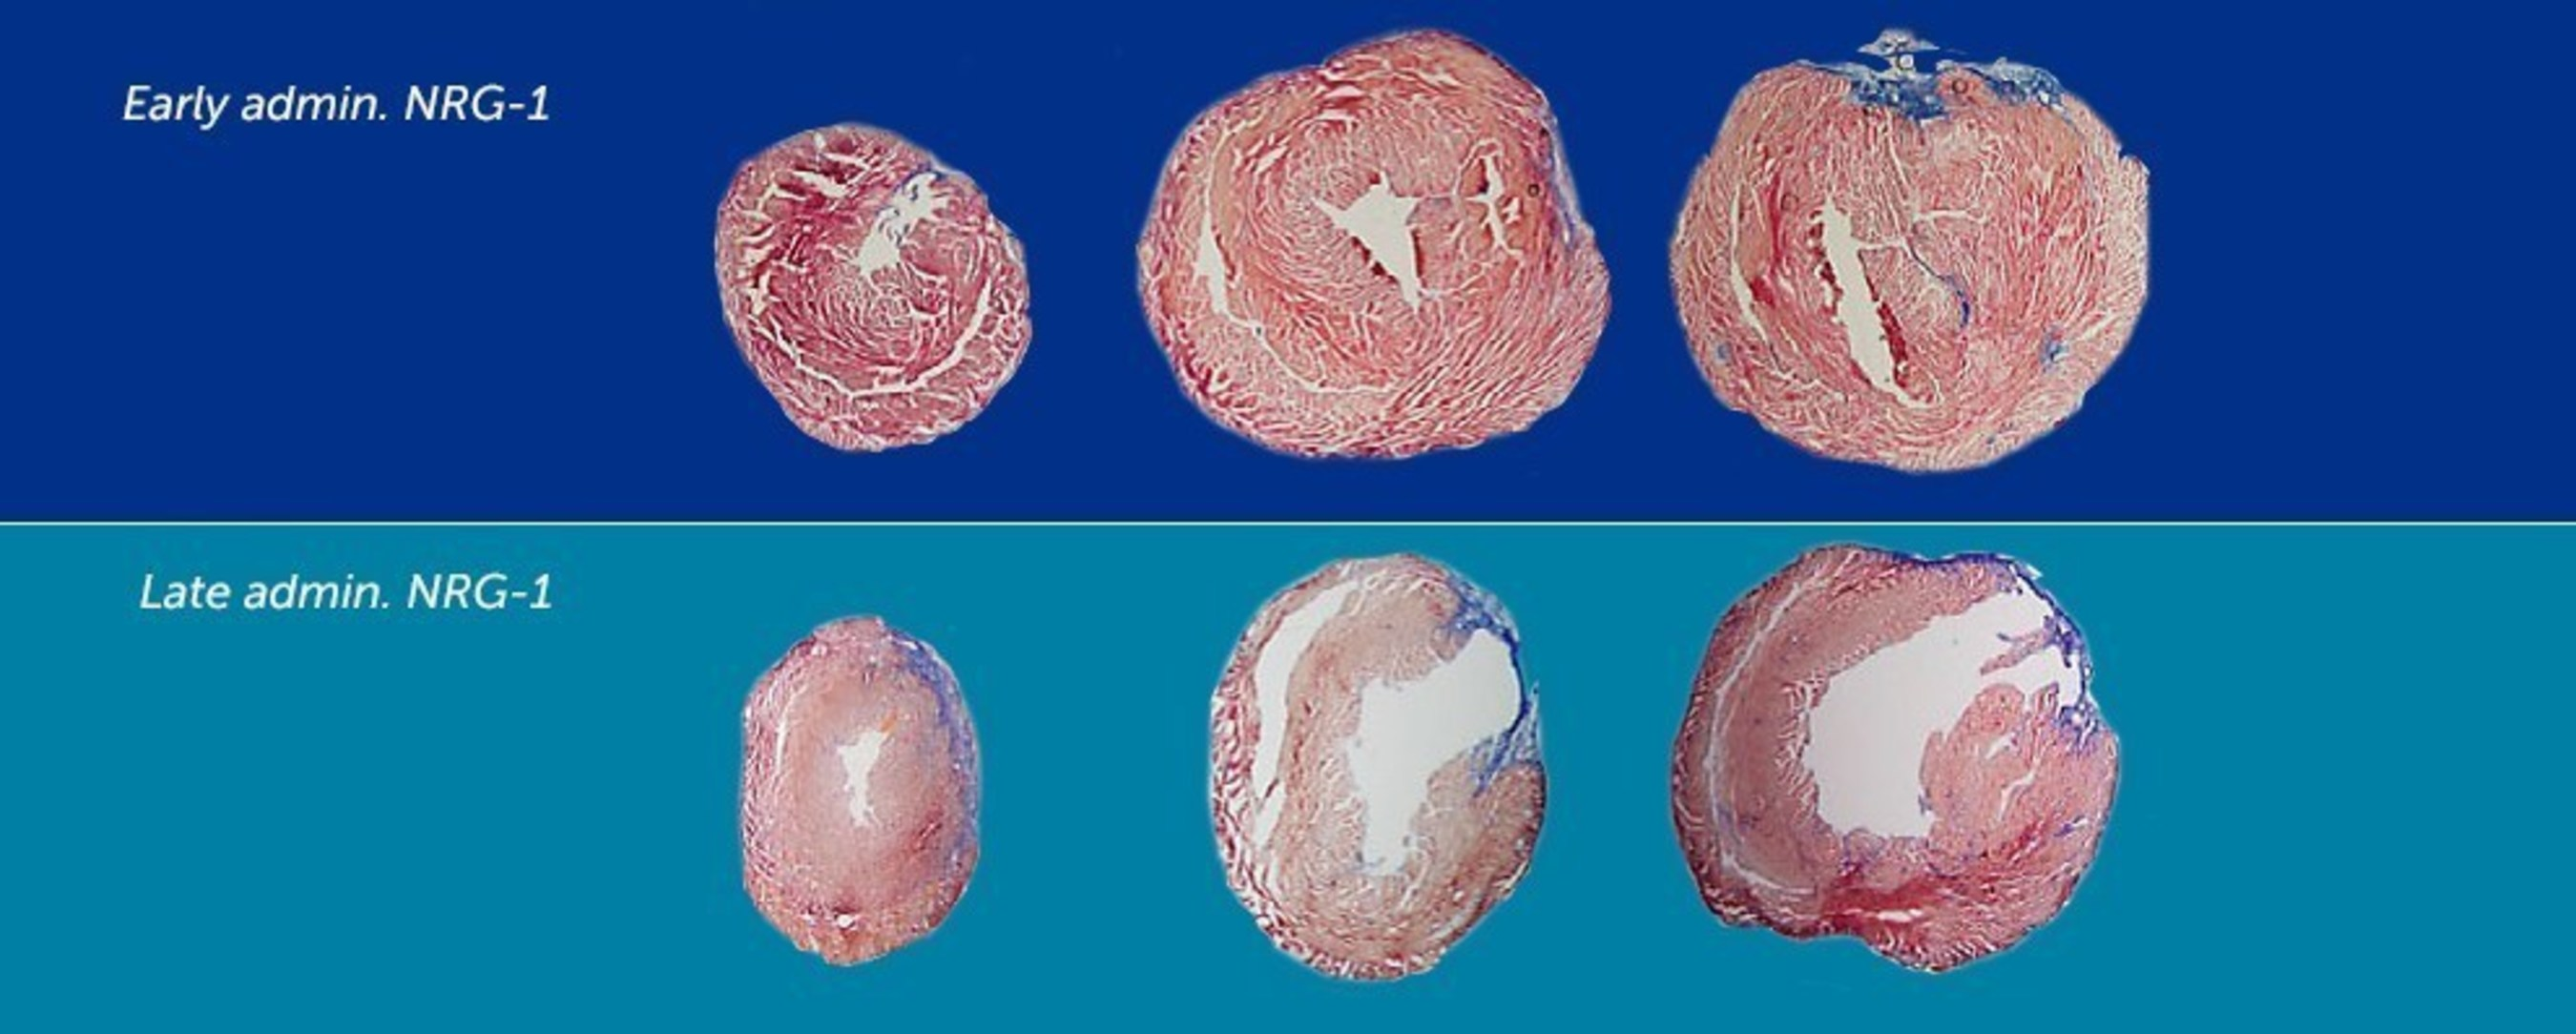 In these sample sections of mouse heart, the color blue signifies scar tissue. Damage from scarring was minimized by early administration of the drug neuregulin.  Read more about this on our Boston Children's Science and Clinical Innovation Blog, Vector.